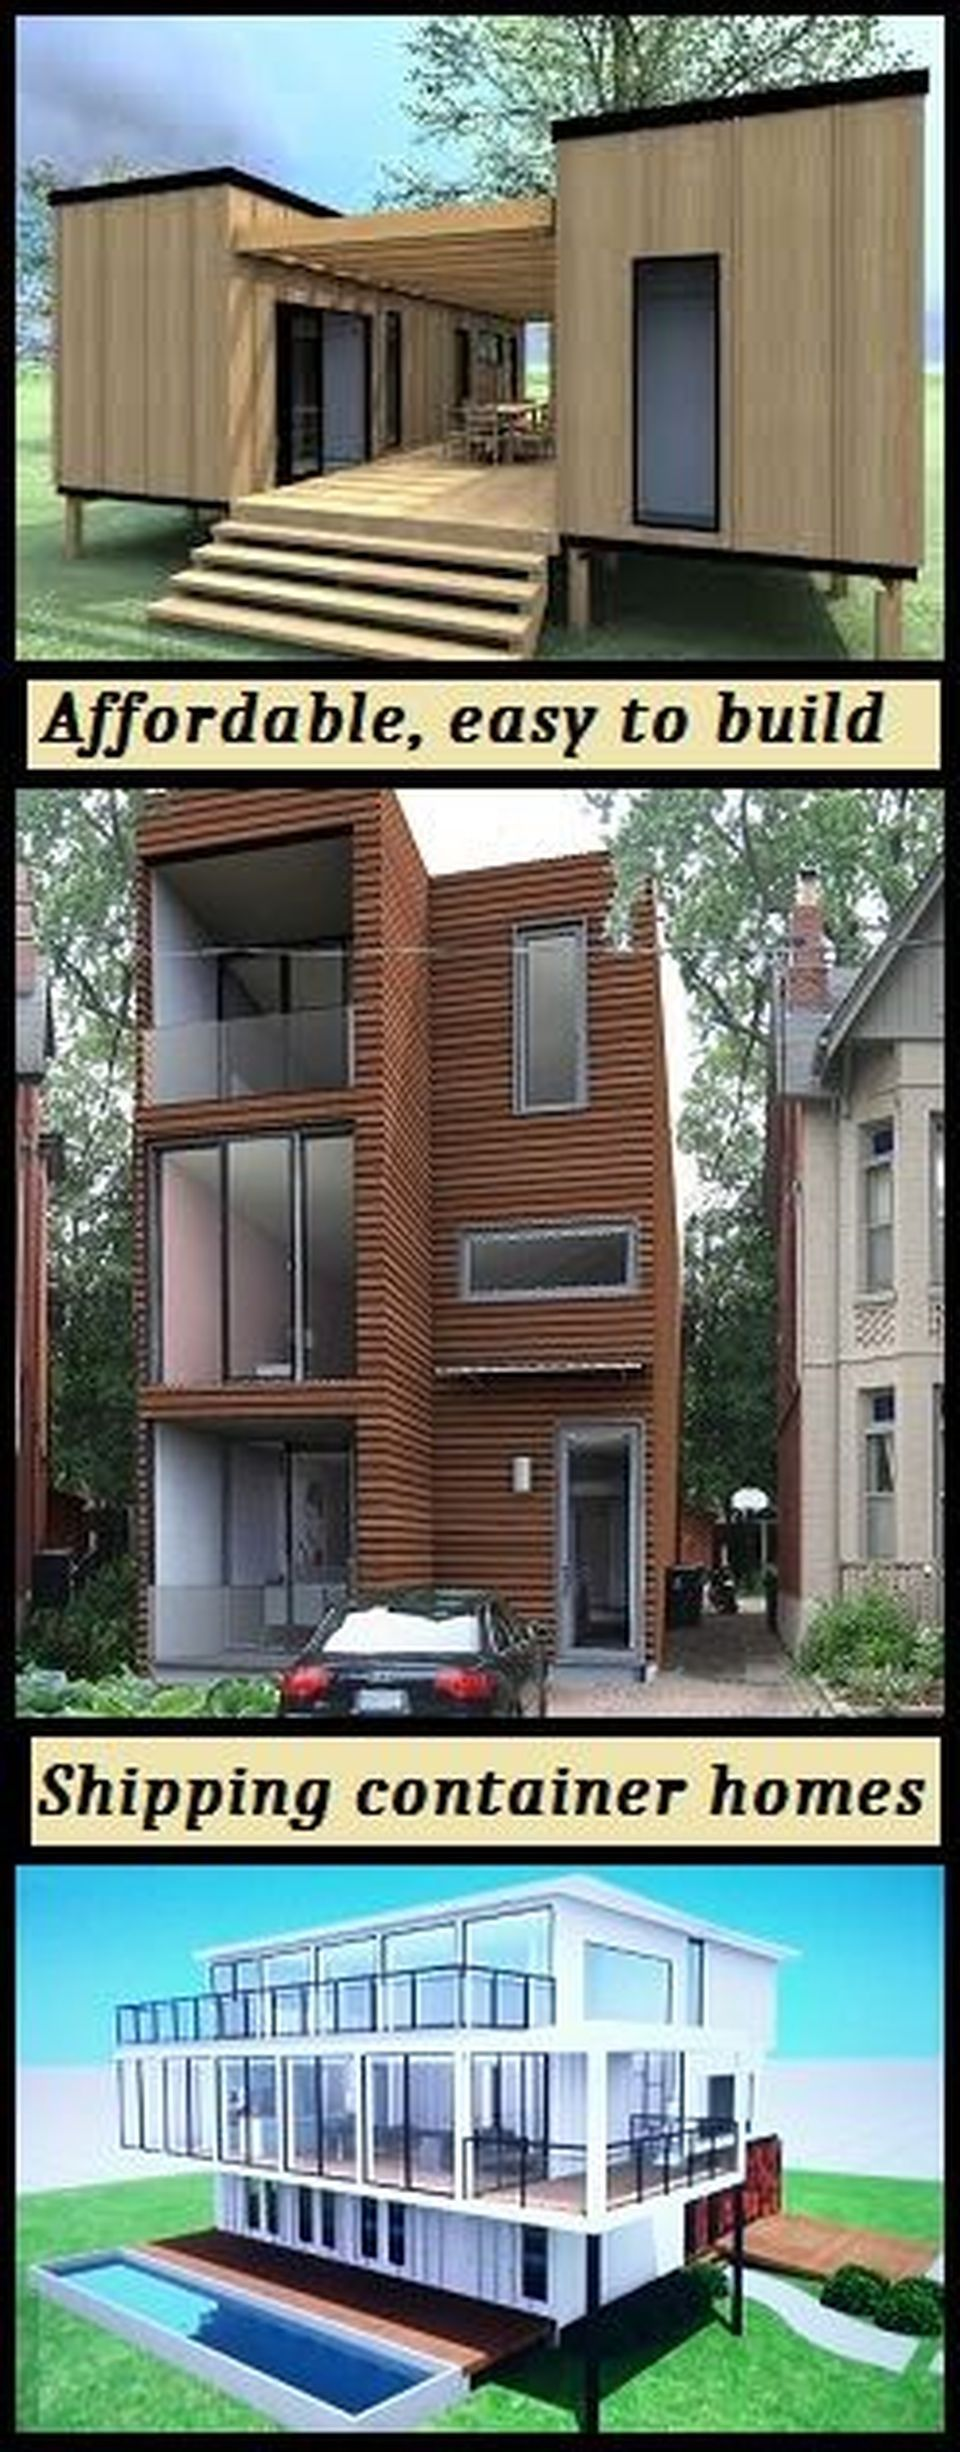 100+ Amazing Shipping Container House Design Ideas   Container ...